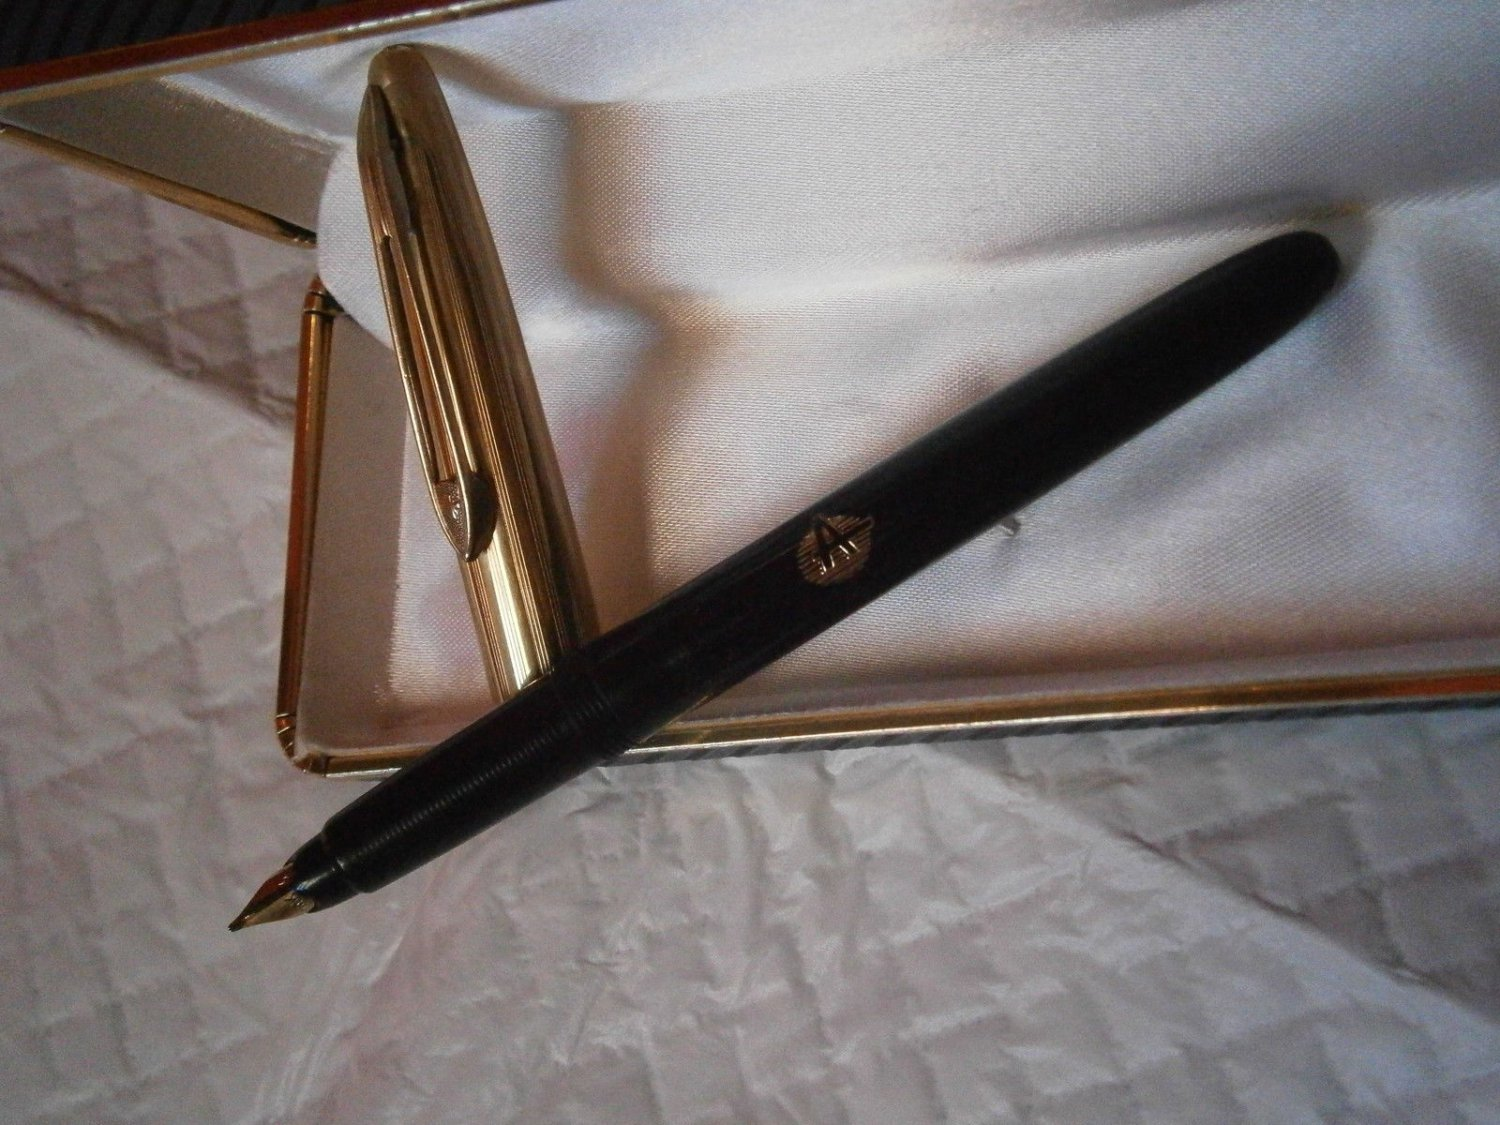 DIPLOMAT fountain pen Black and Gold 14K Original in gift box